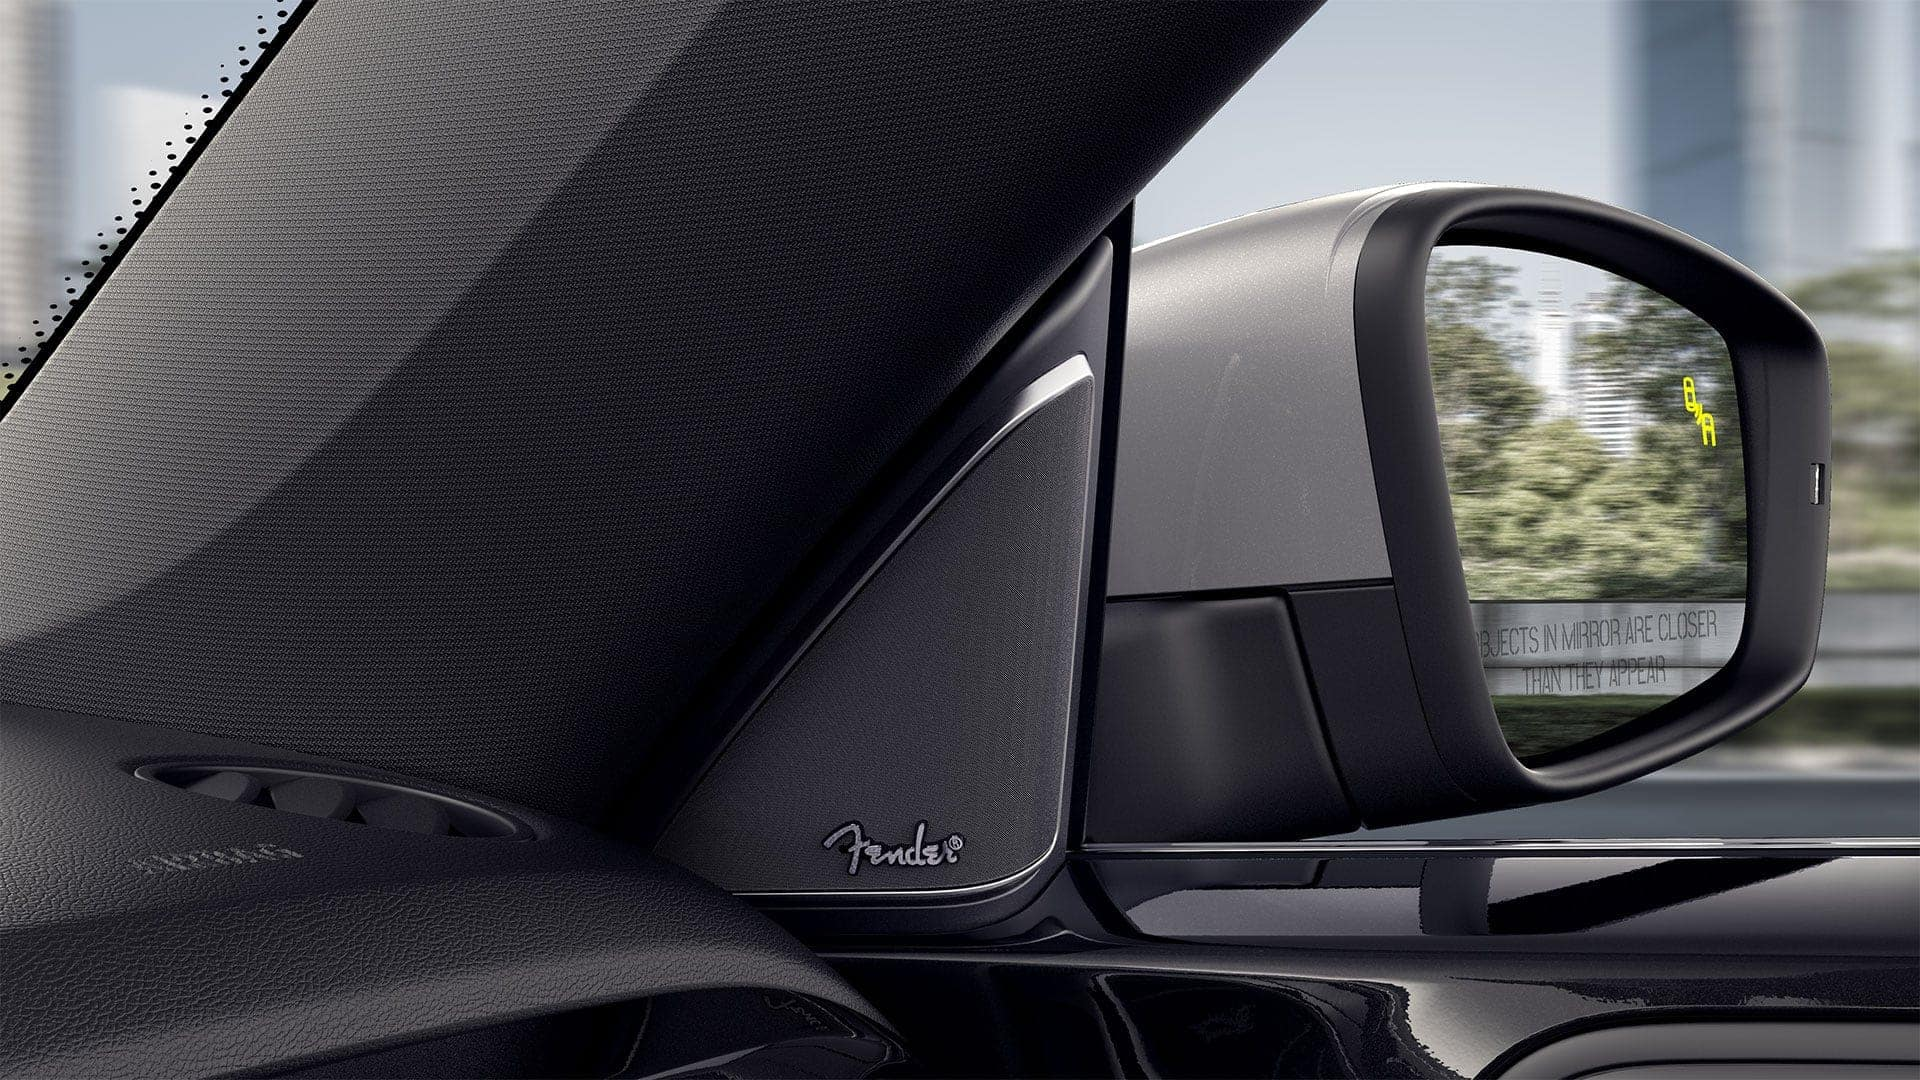 2019 VW Beetle fender audio